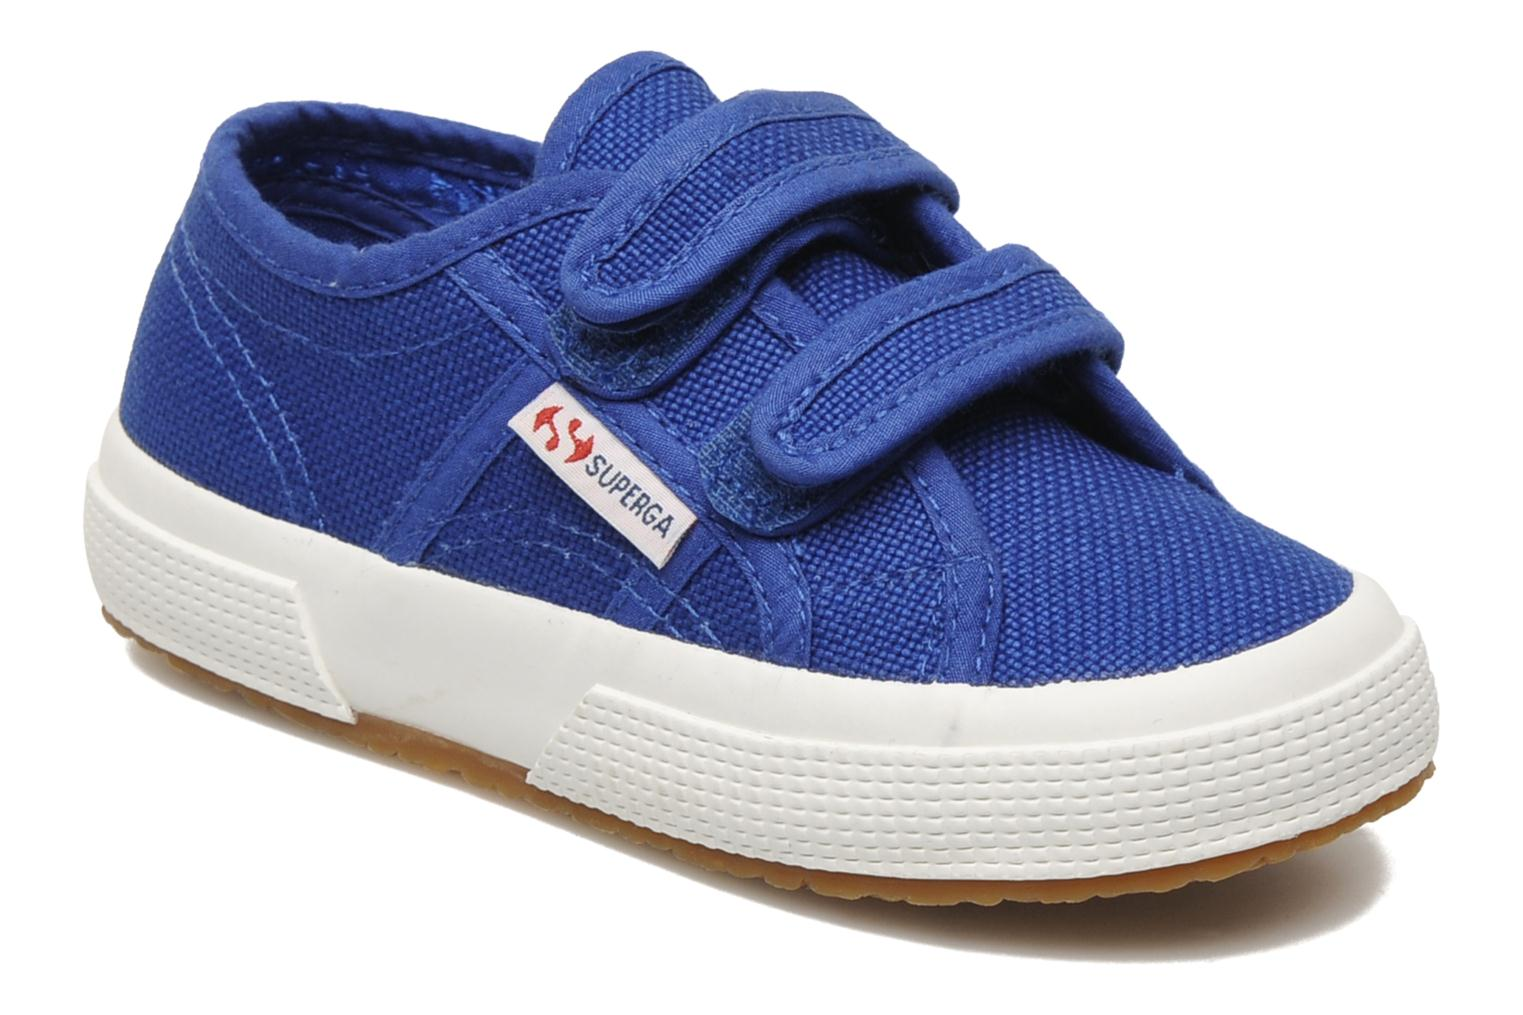 2750 J Velcro E Intense blue